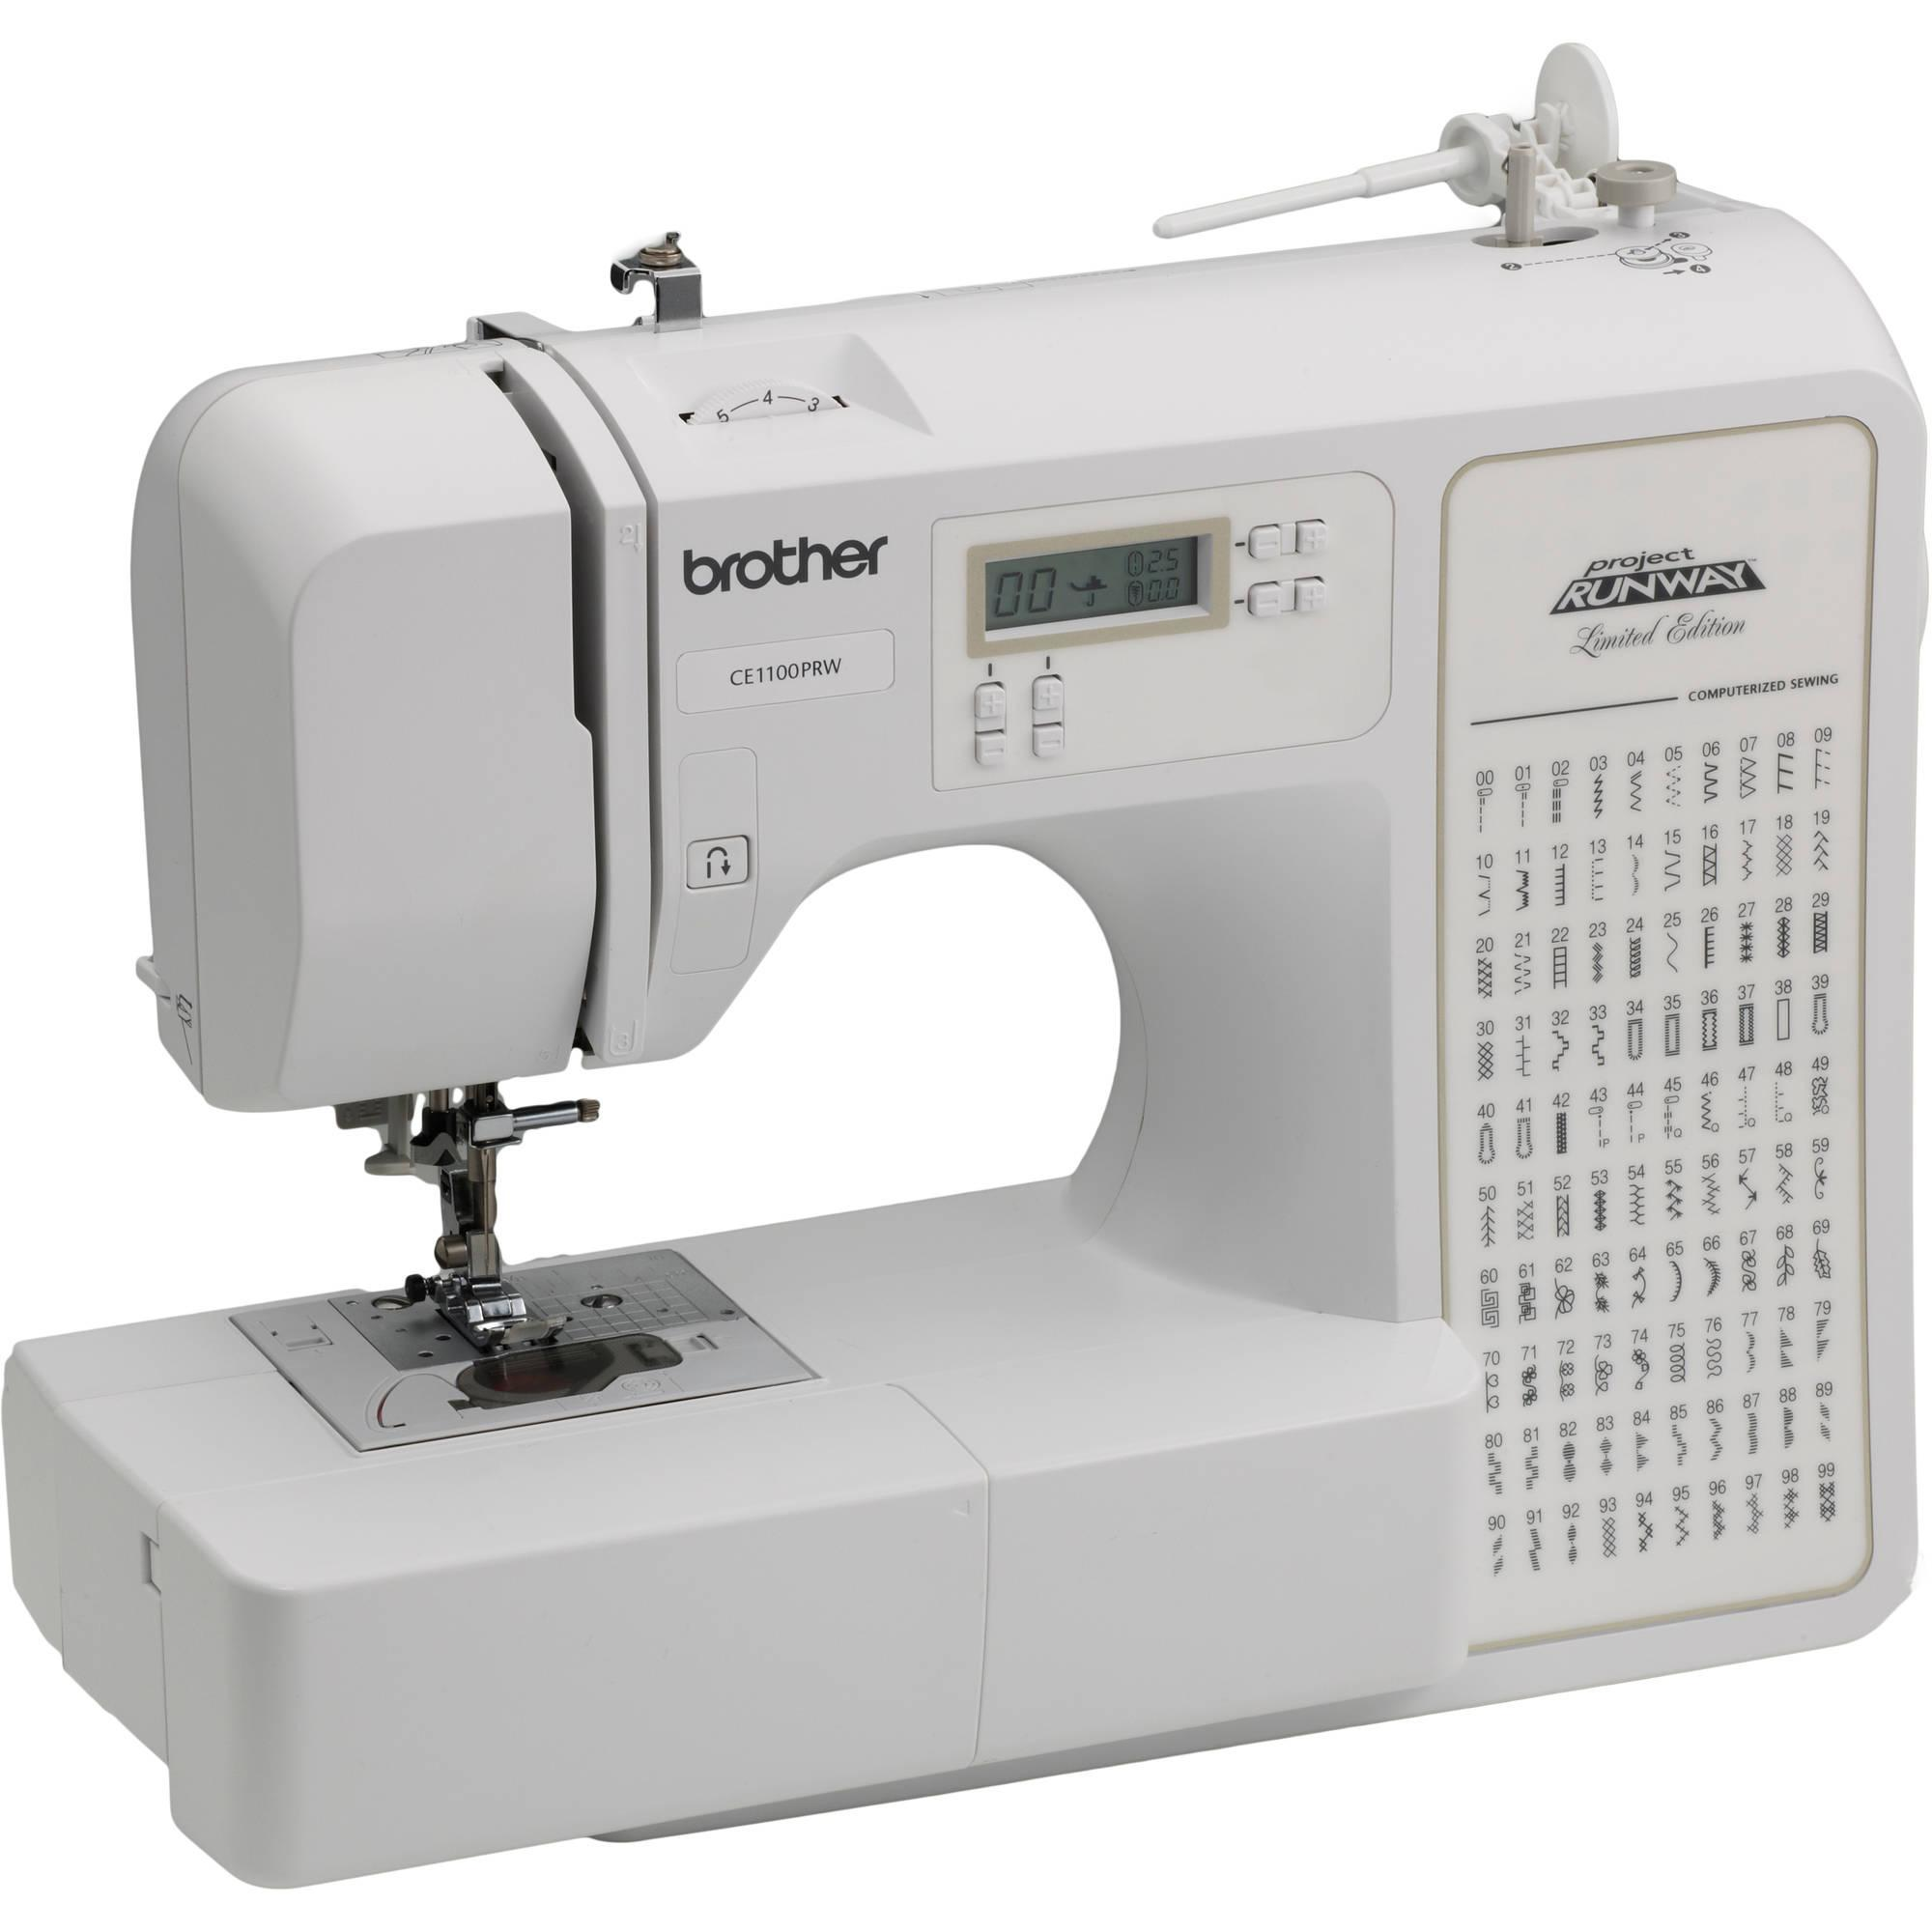 Brother Computerized 100-Stitch Project Runway Sewing Machine Just $129.97! Down From $399.99!